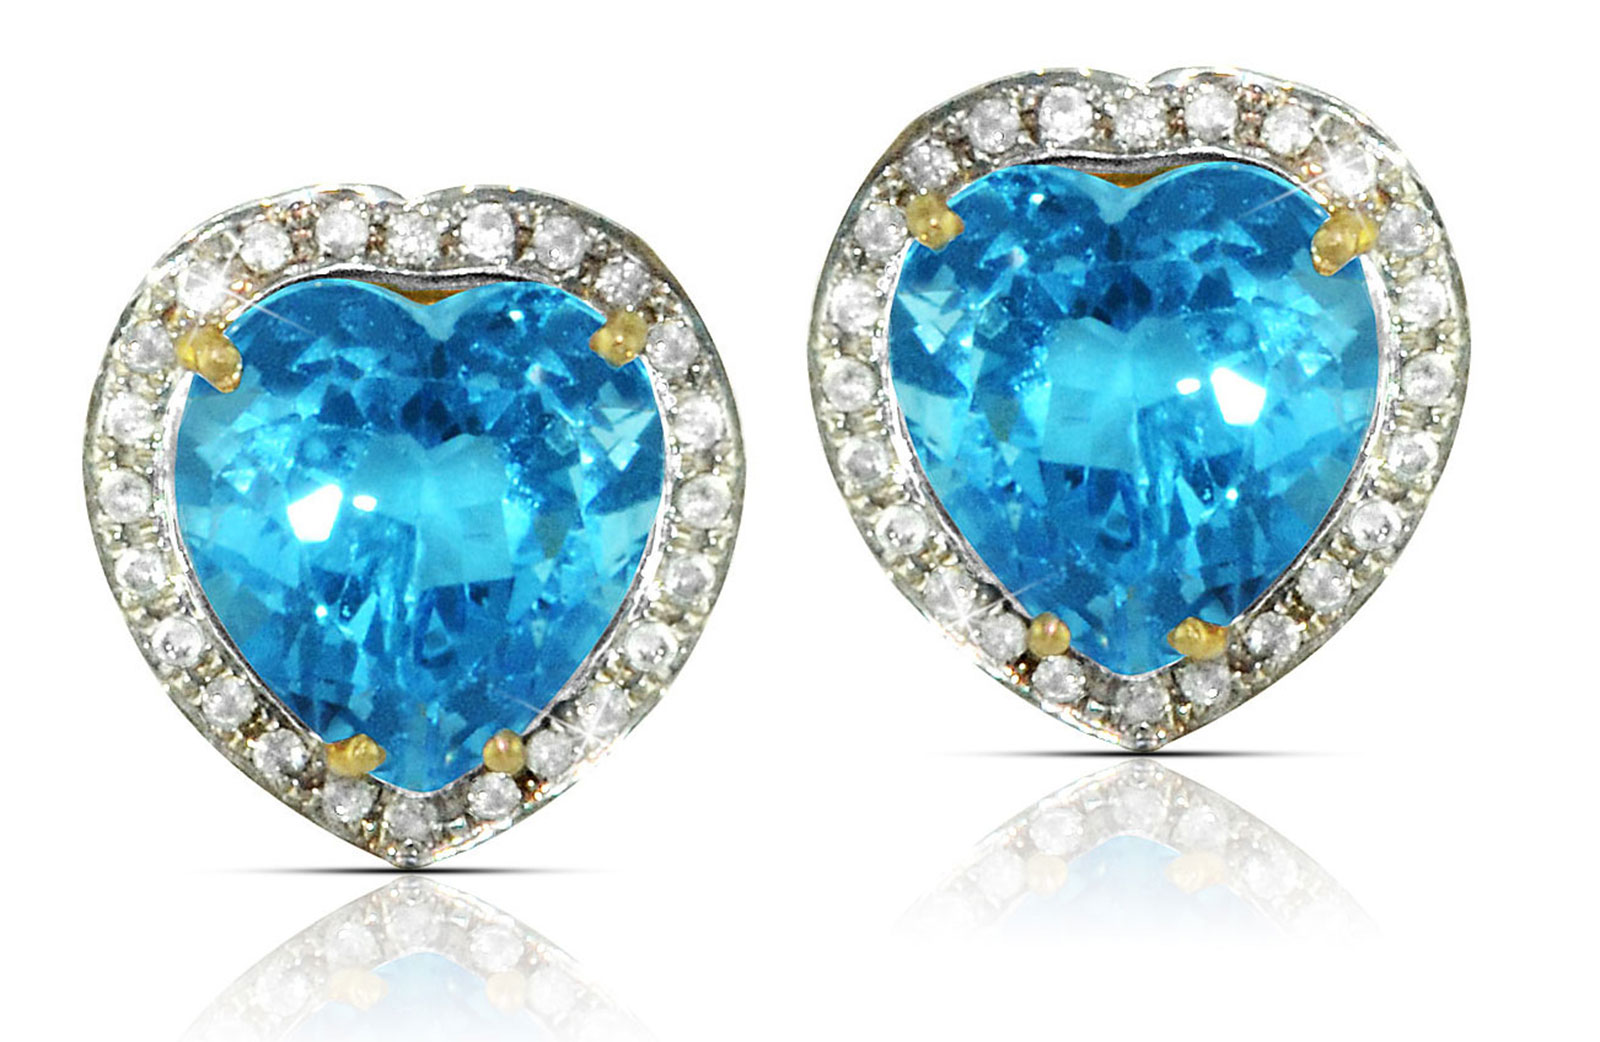 Vera Perla 18k  Gold 10mm Genuine Heart  Cut Swiss Blue Topaz 0.28Ct Genuine Diamonds earrings